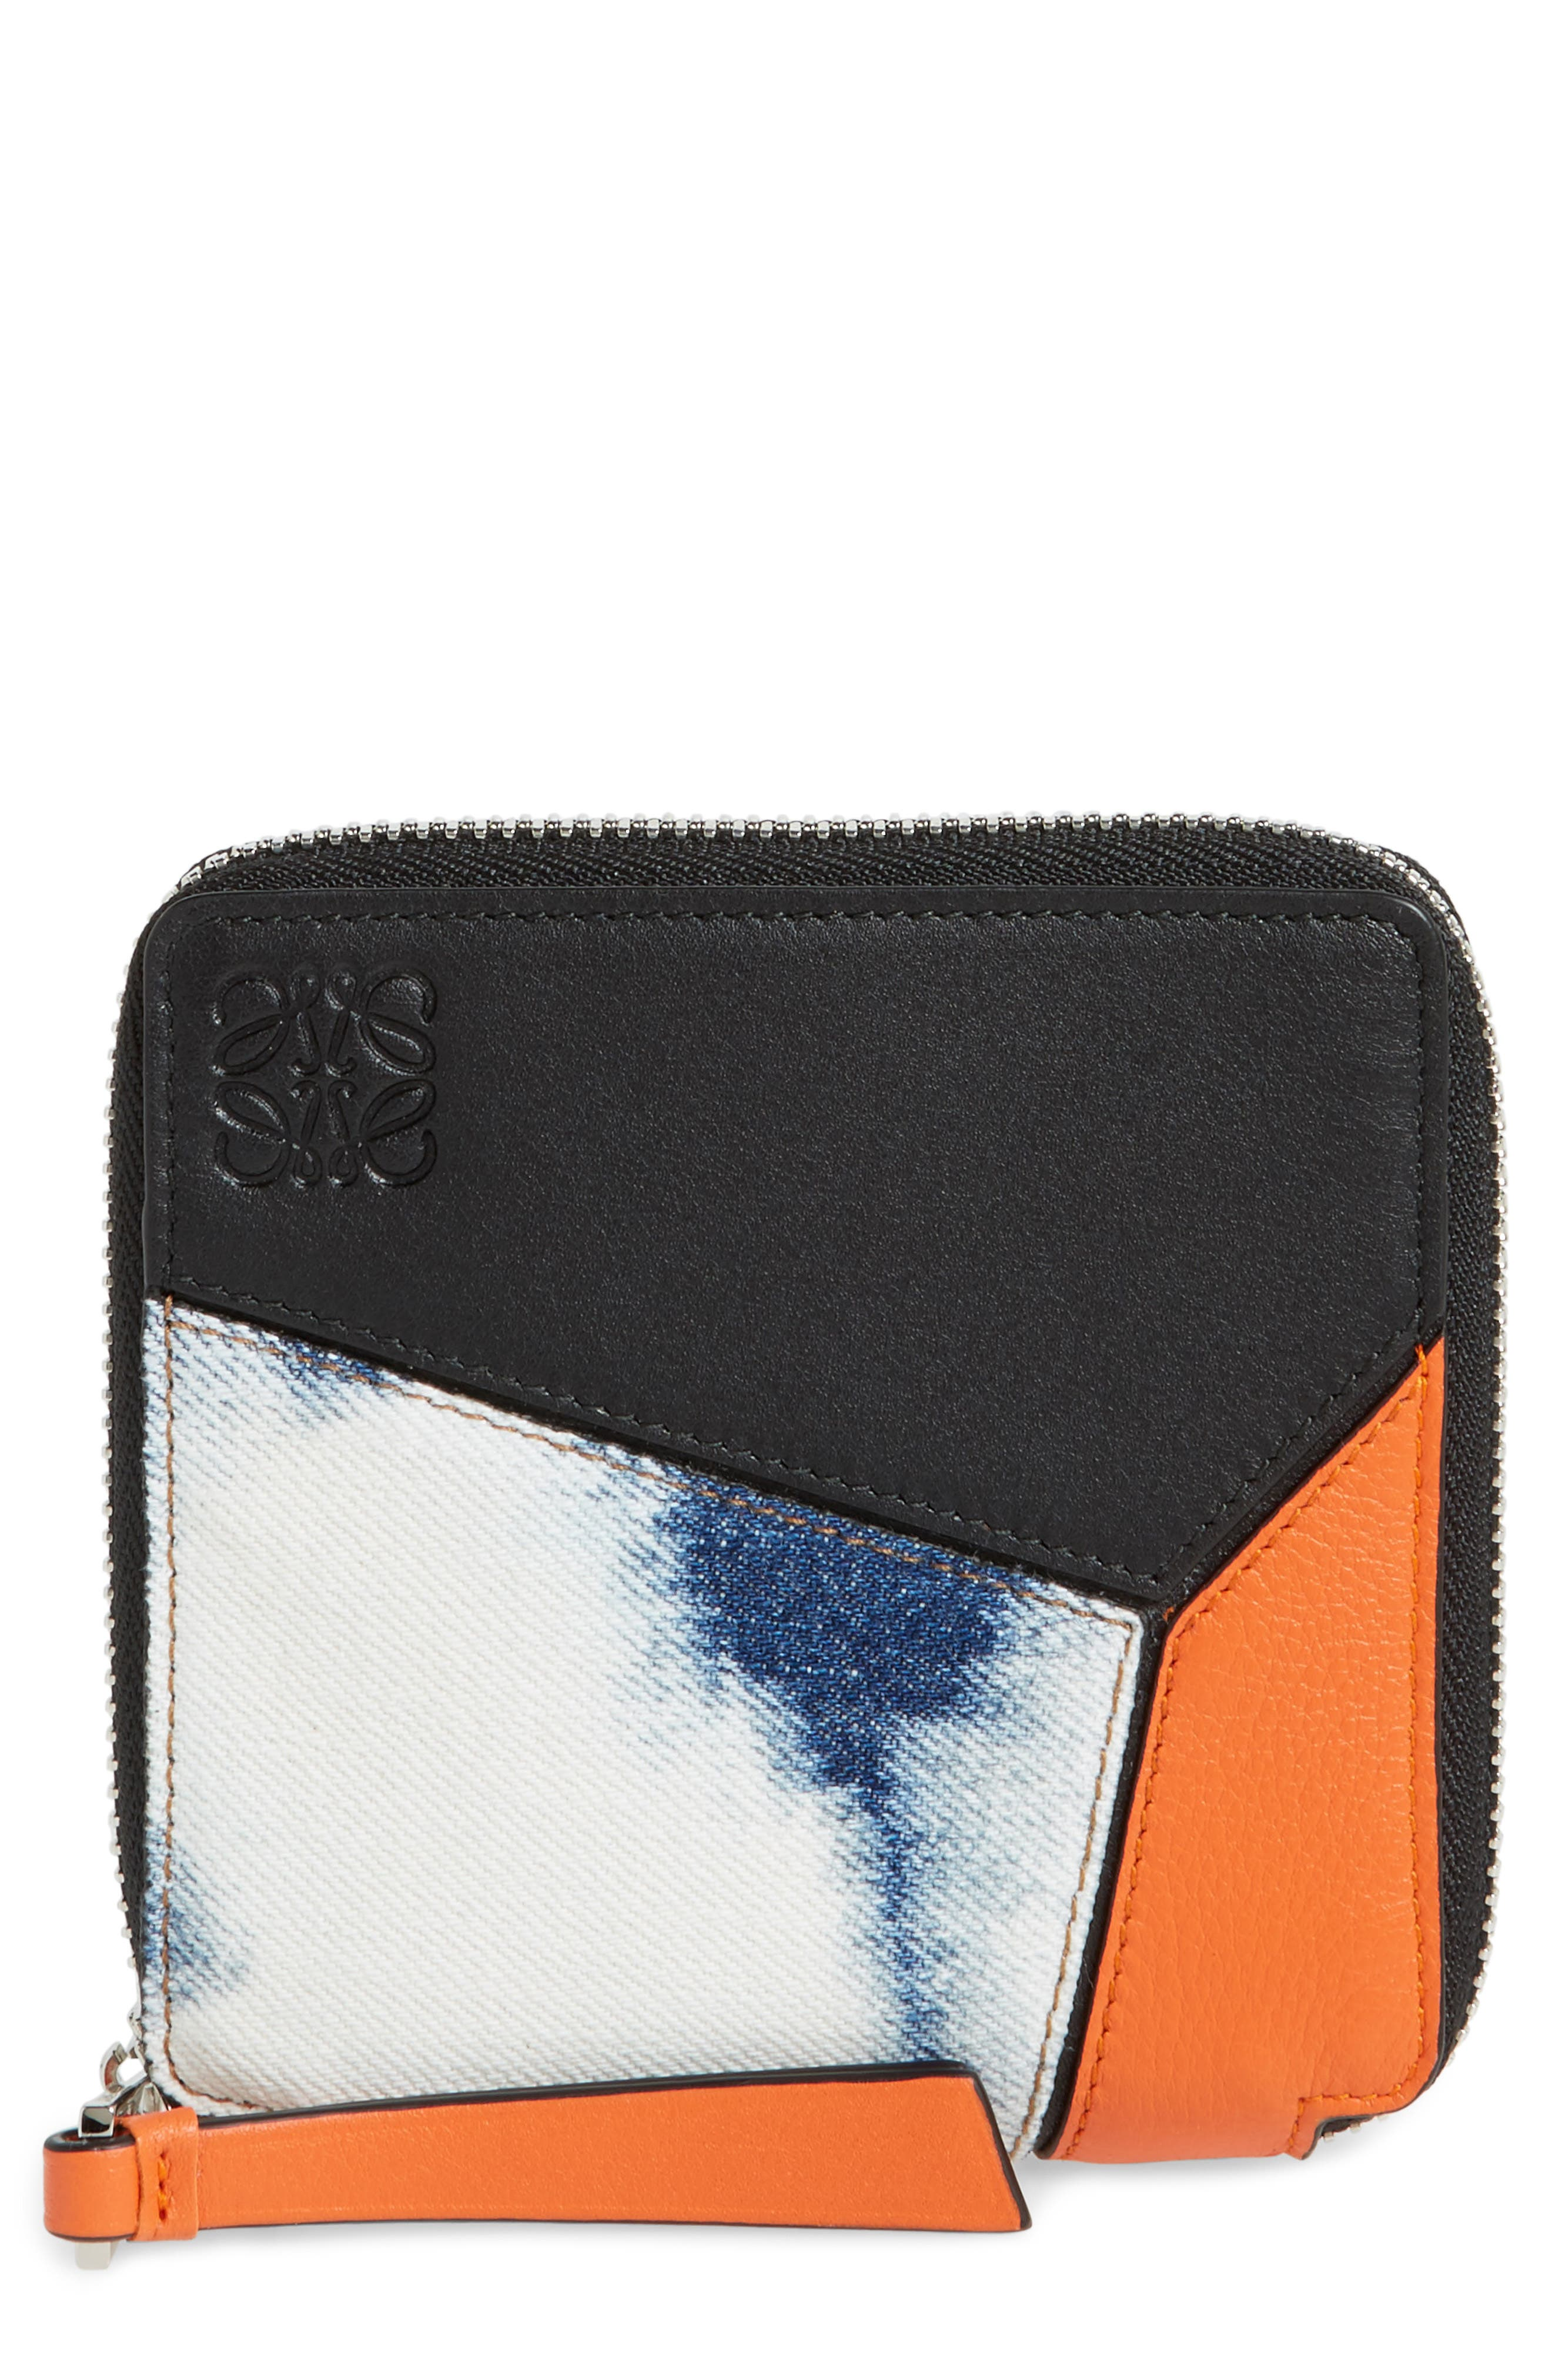 Small Puzzle Leather Zip Around French Wallet,                             Main thumbnail 1, color,                             001